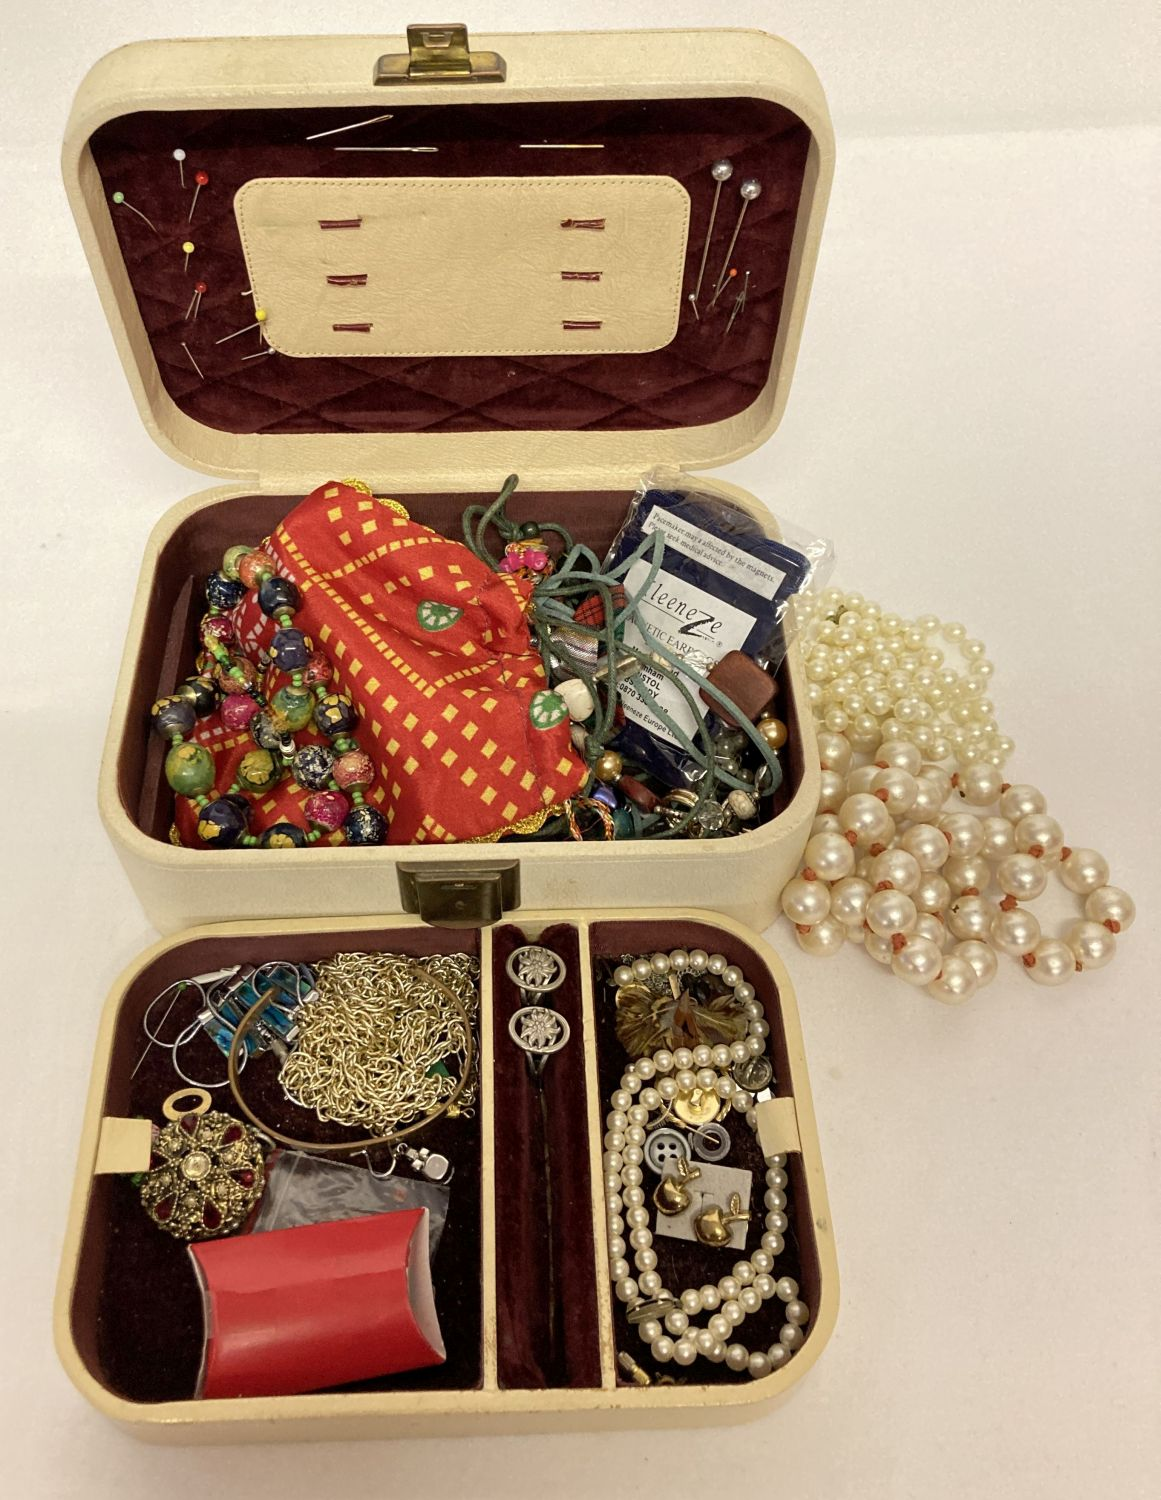 A vintage cream coloured jewellery box and contents.